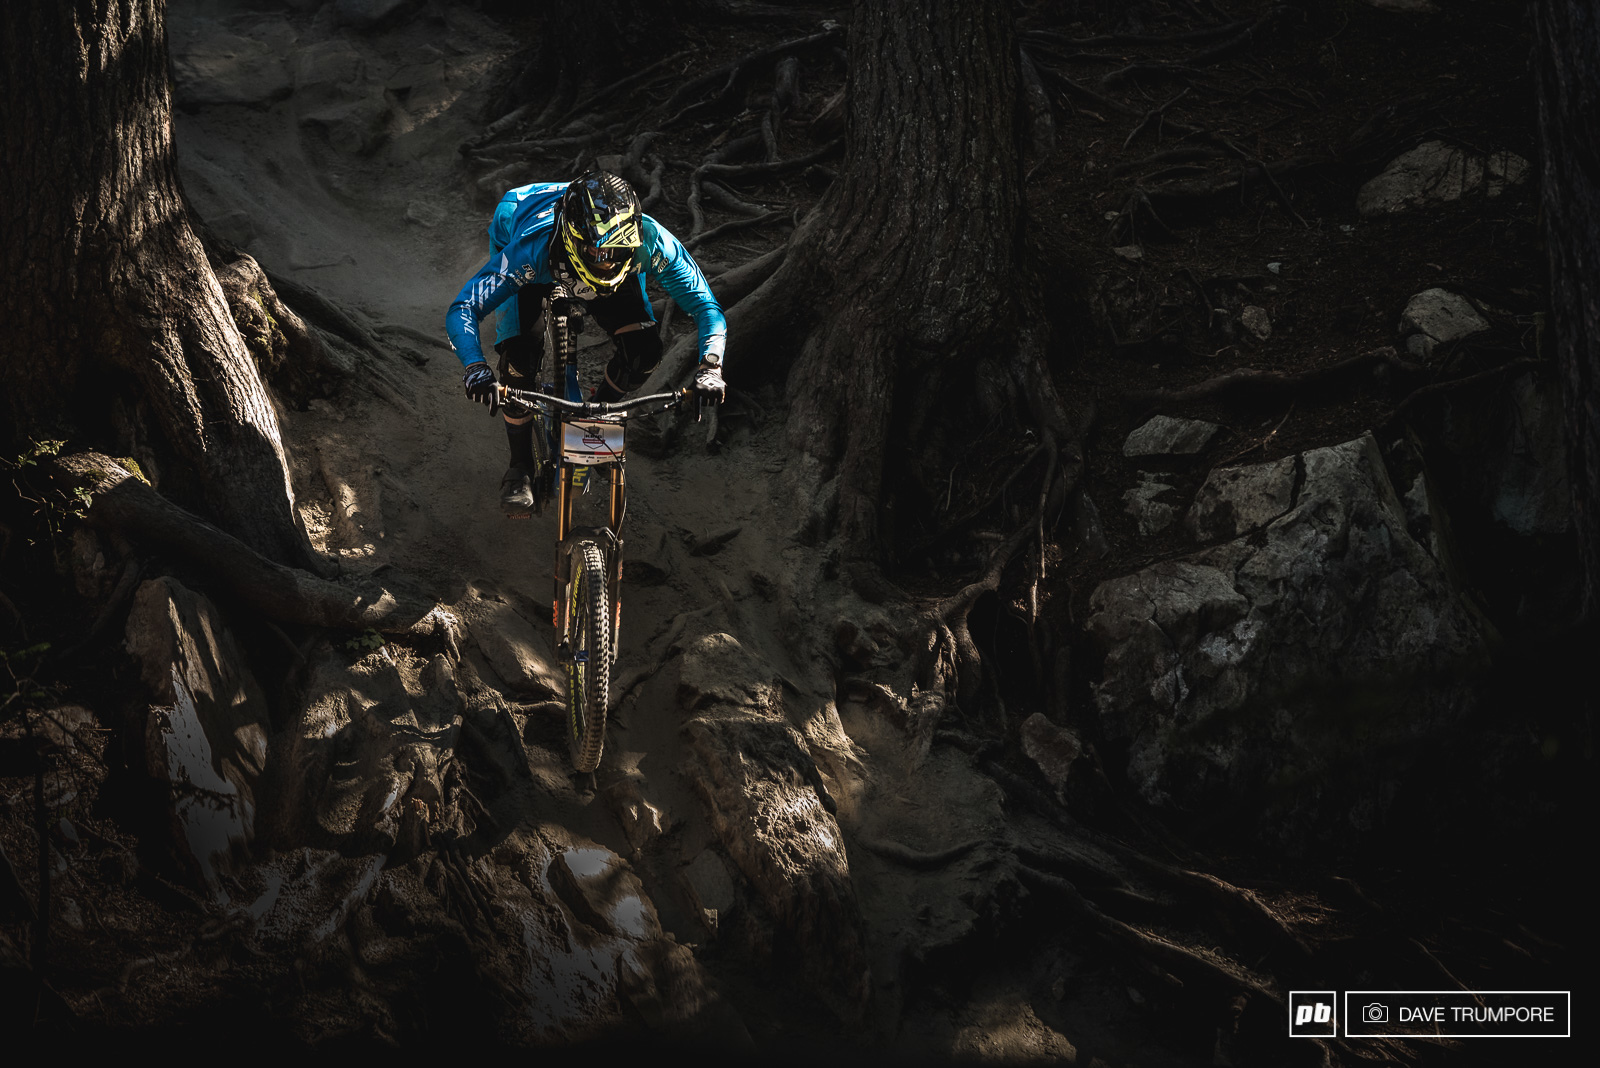 Defending King of Crankworx Barnard Kerr rounded out the top 10 today.